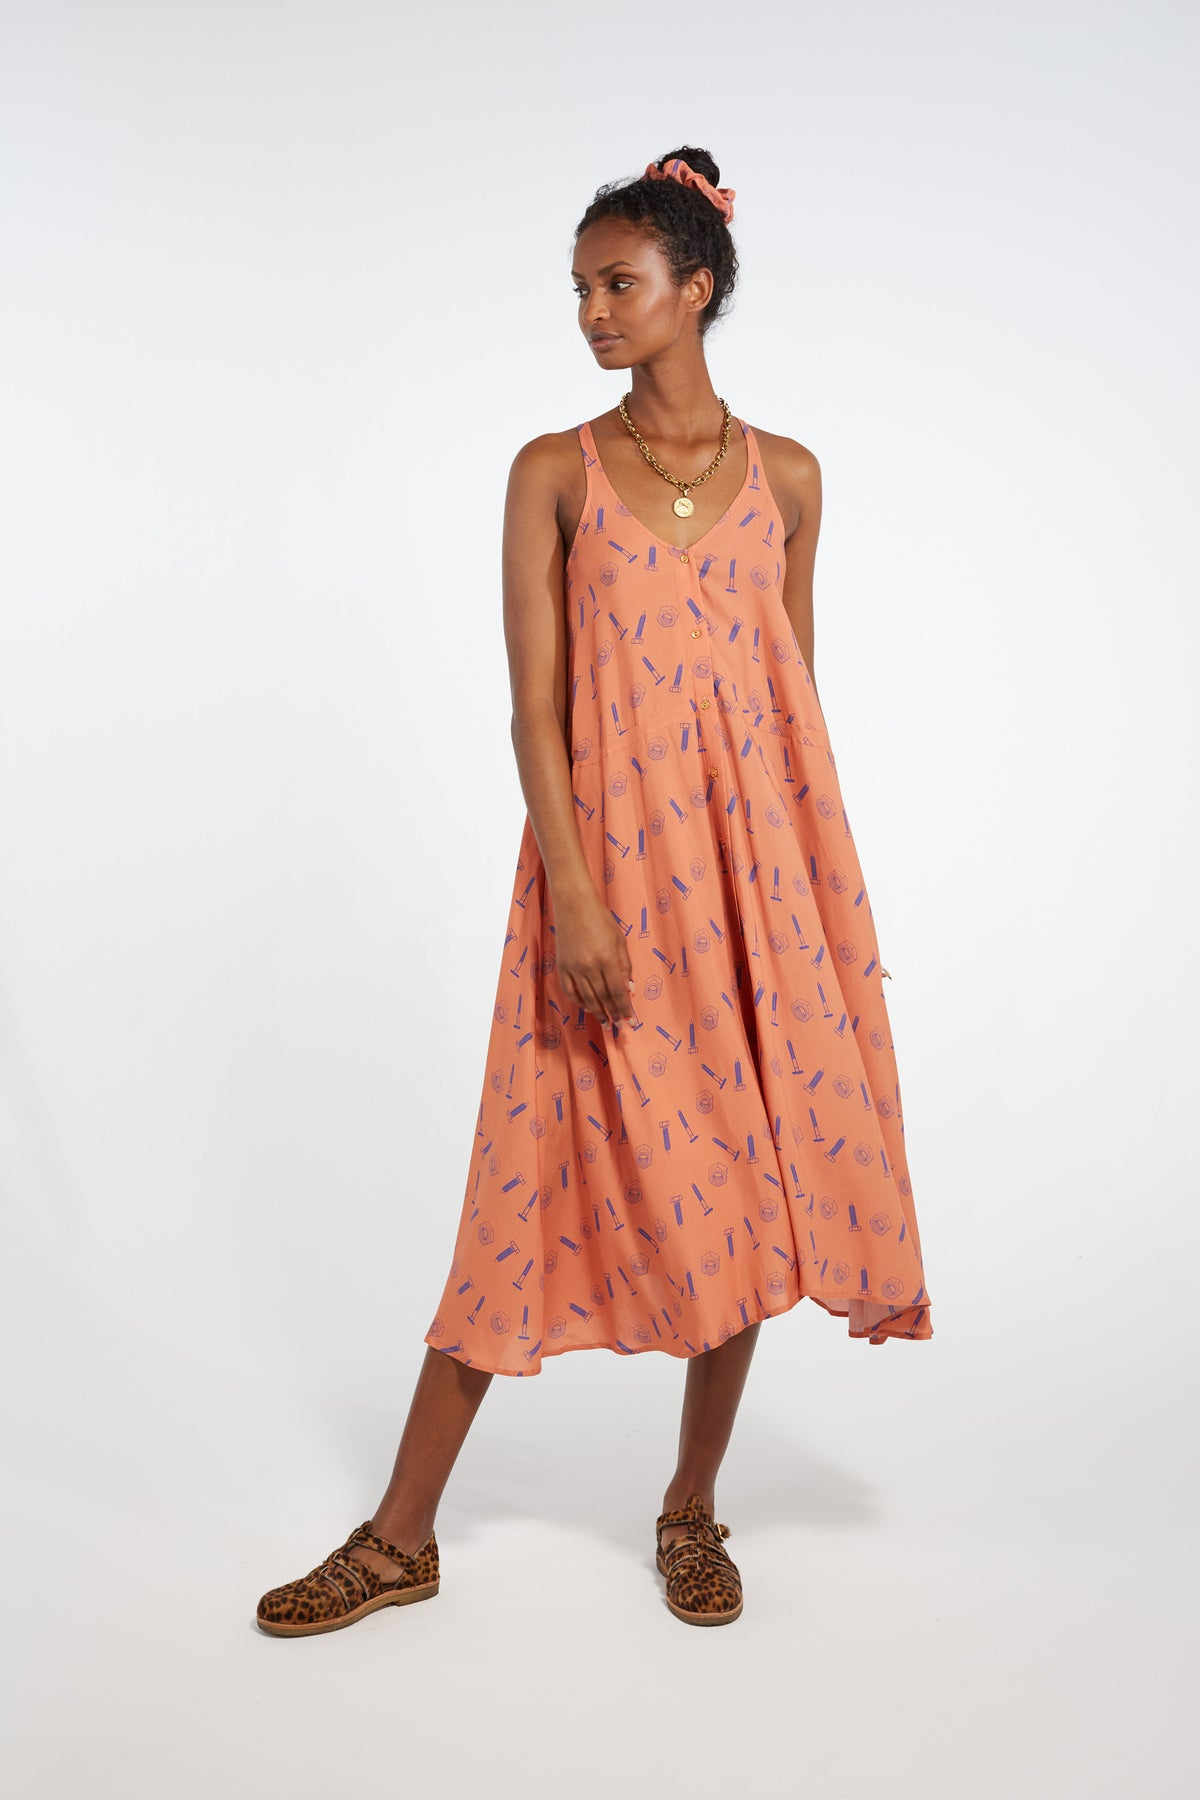 Java dress in orange bolts print